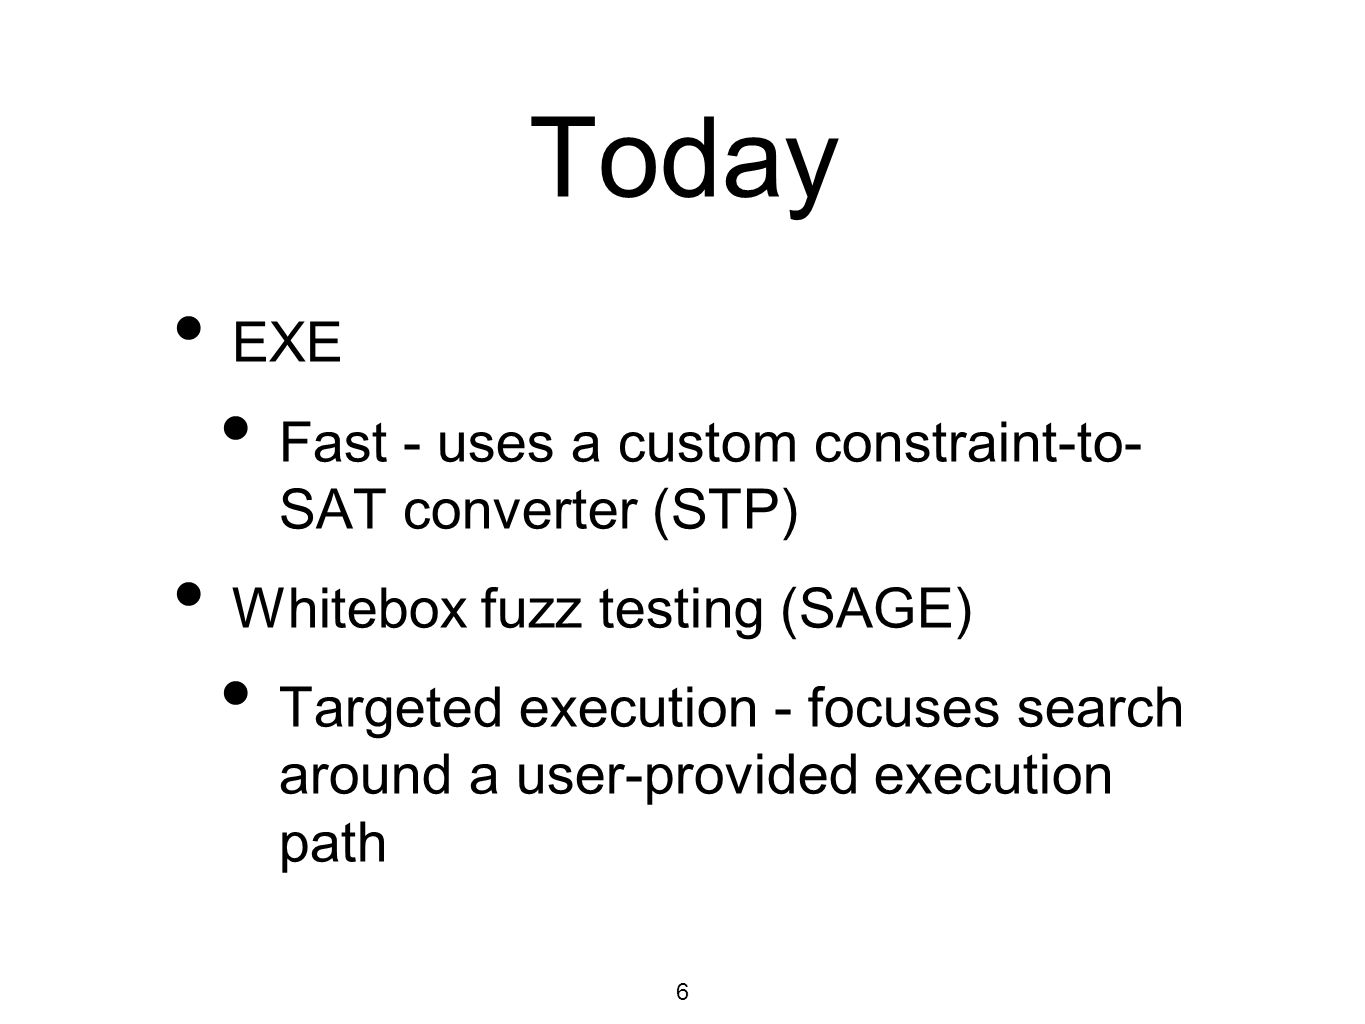 6 Today EXE Fast - uses a custom constraint-to- SAT converter (STP) Whitebox fuzz testing (SAGE) Targeted execution - focuses search around a user-provided execution path